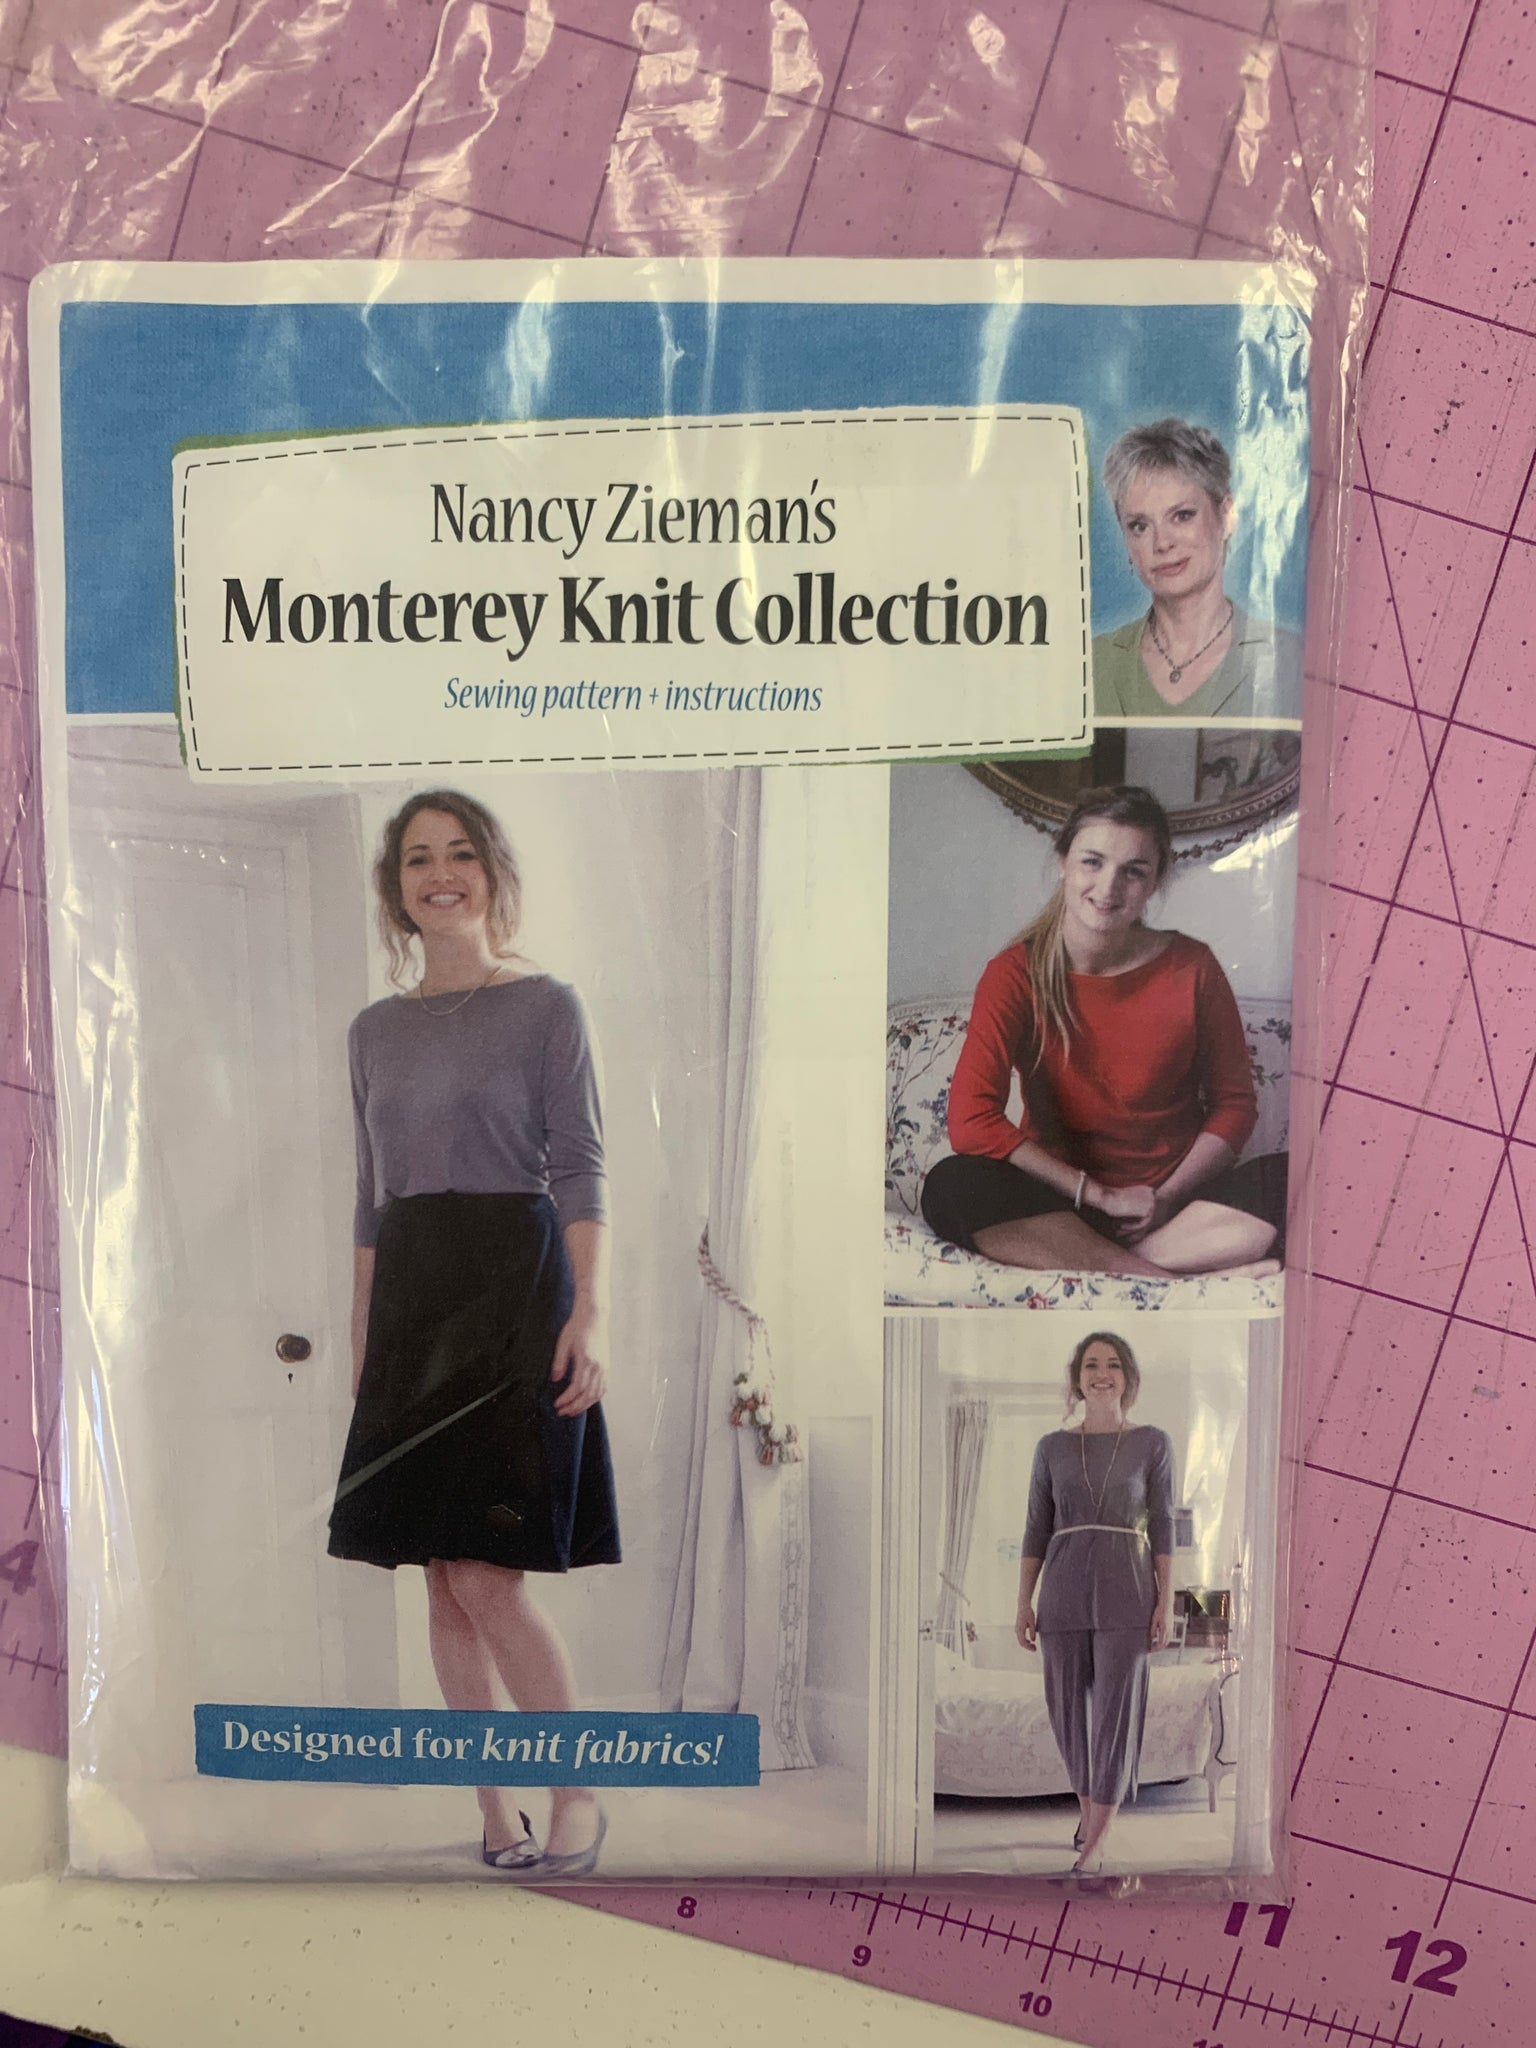 Monterey knit collection